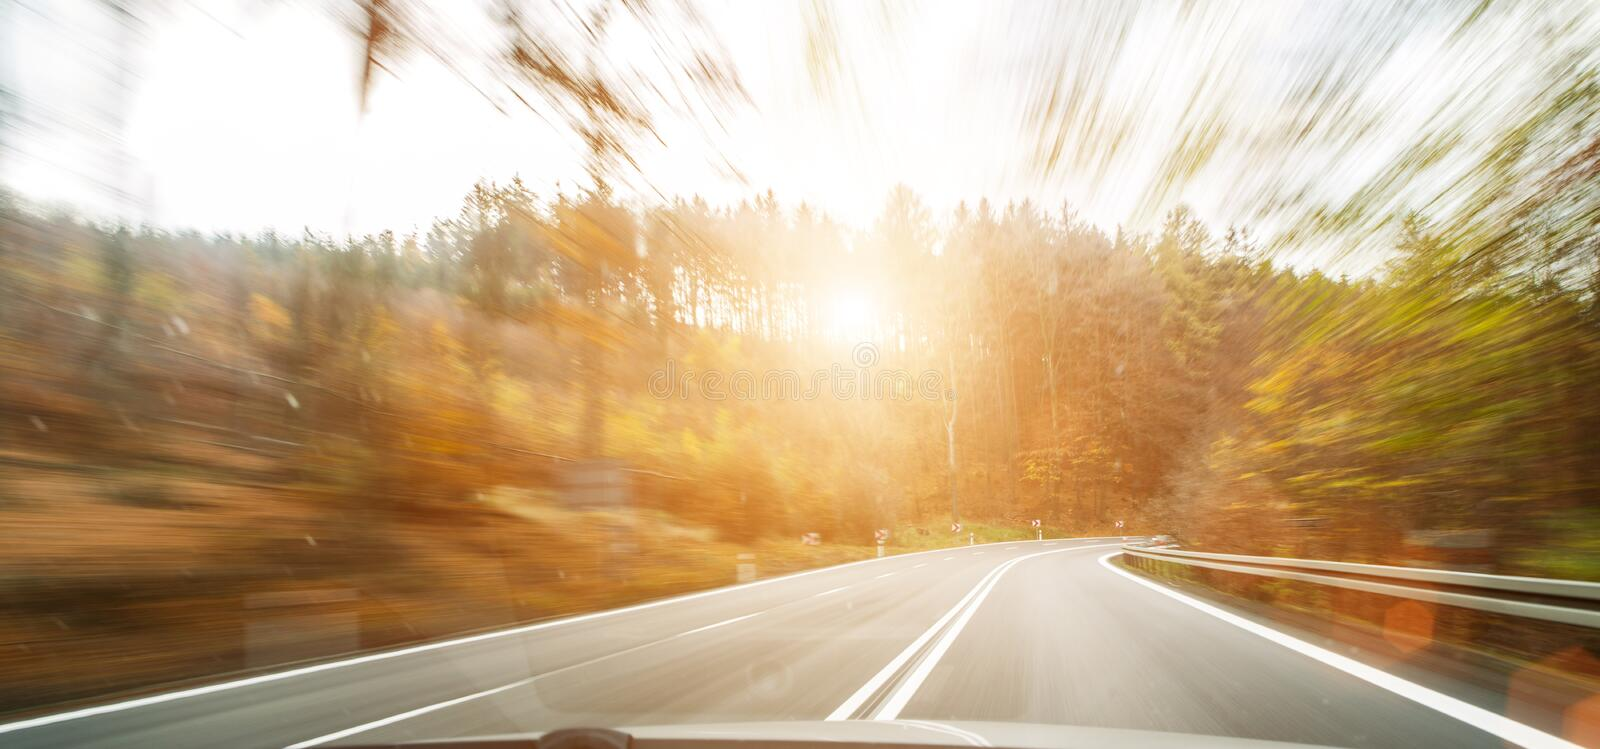 Front view of the highway road passing the country side inside the fast car long exposure shoot royalty free stock photos